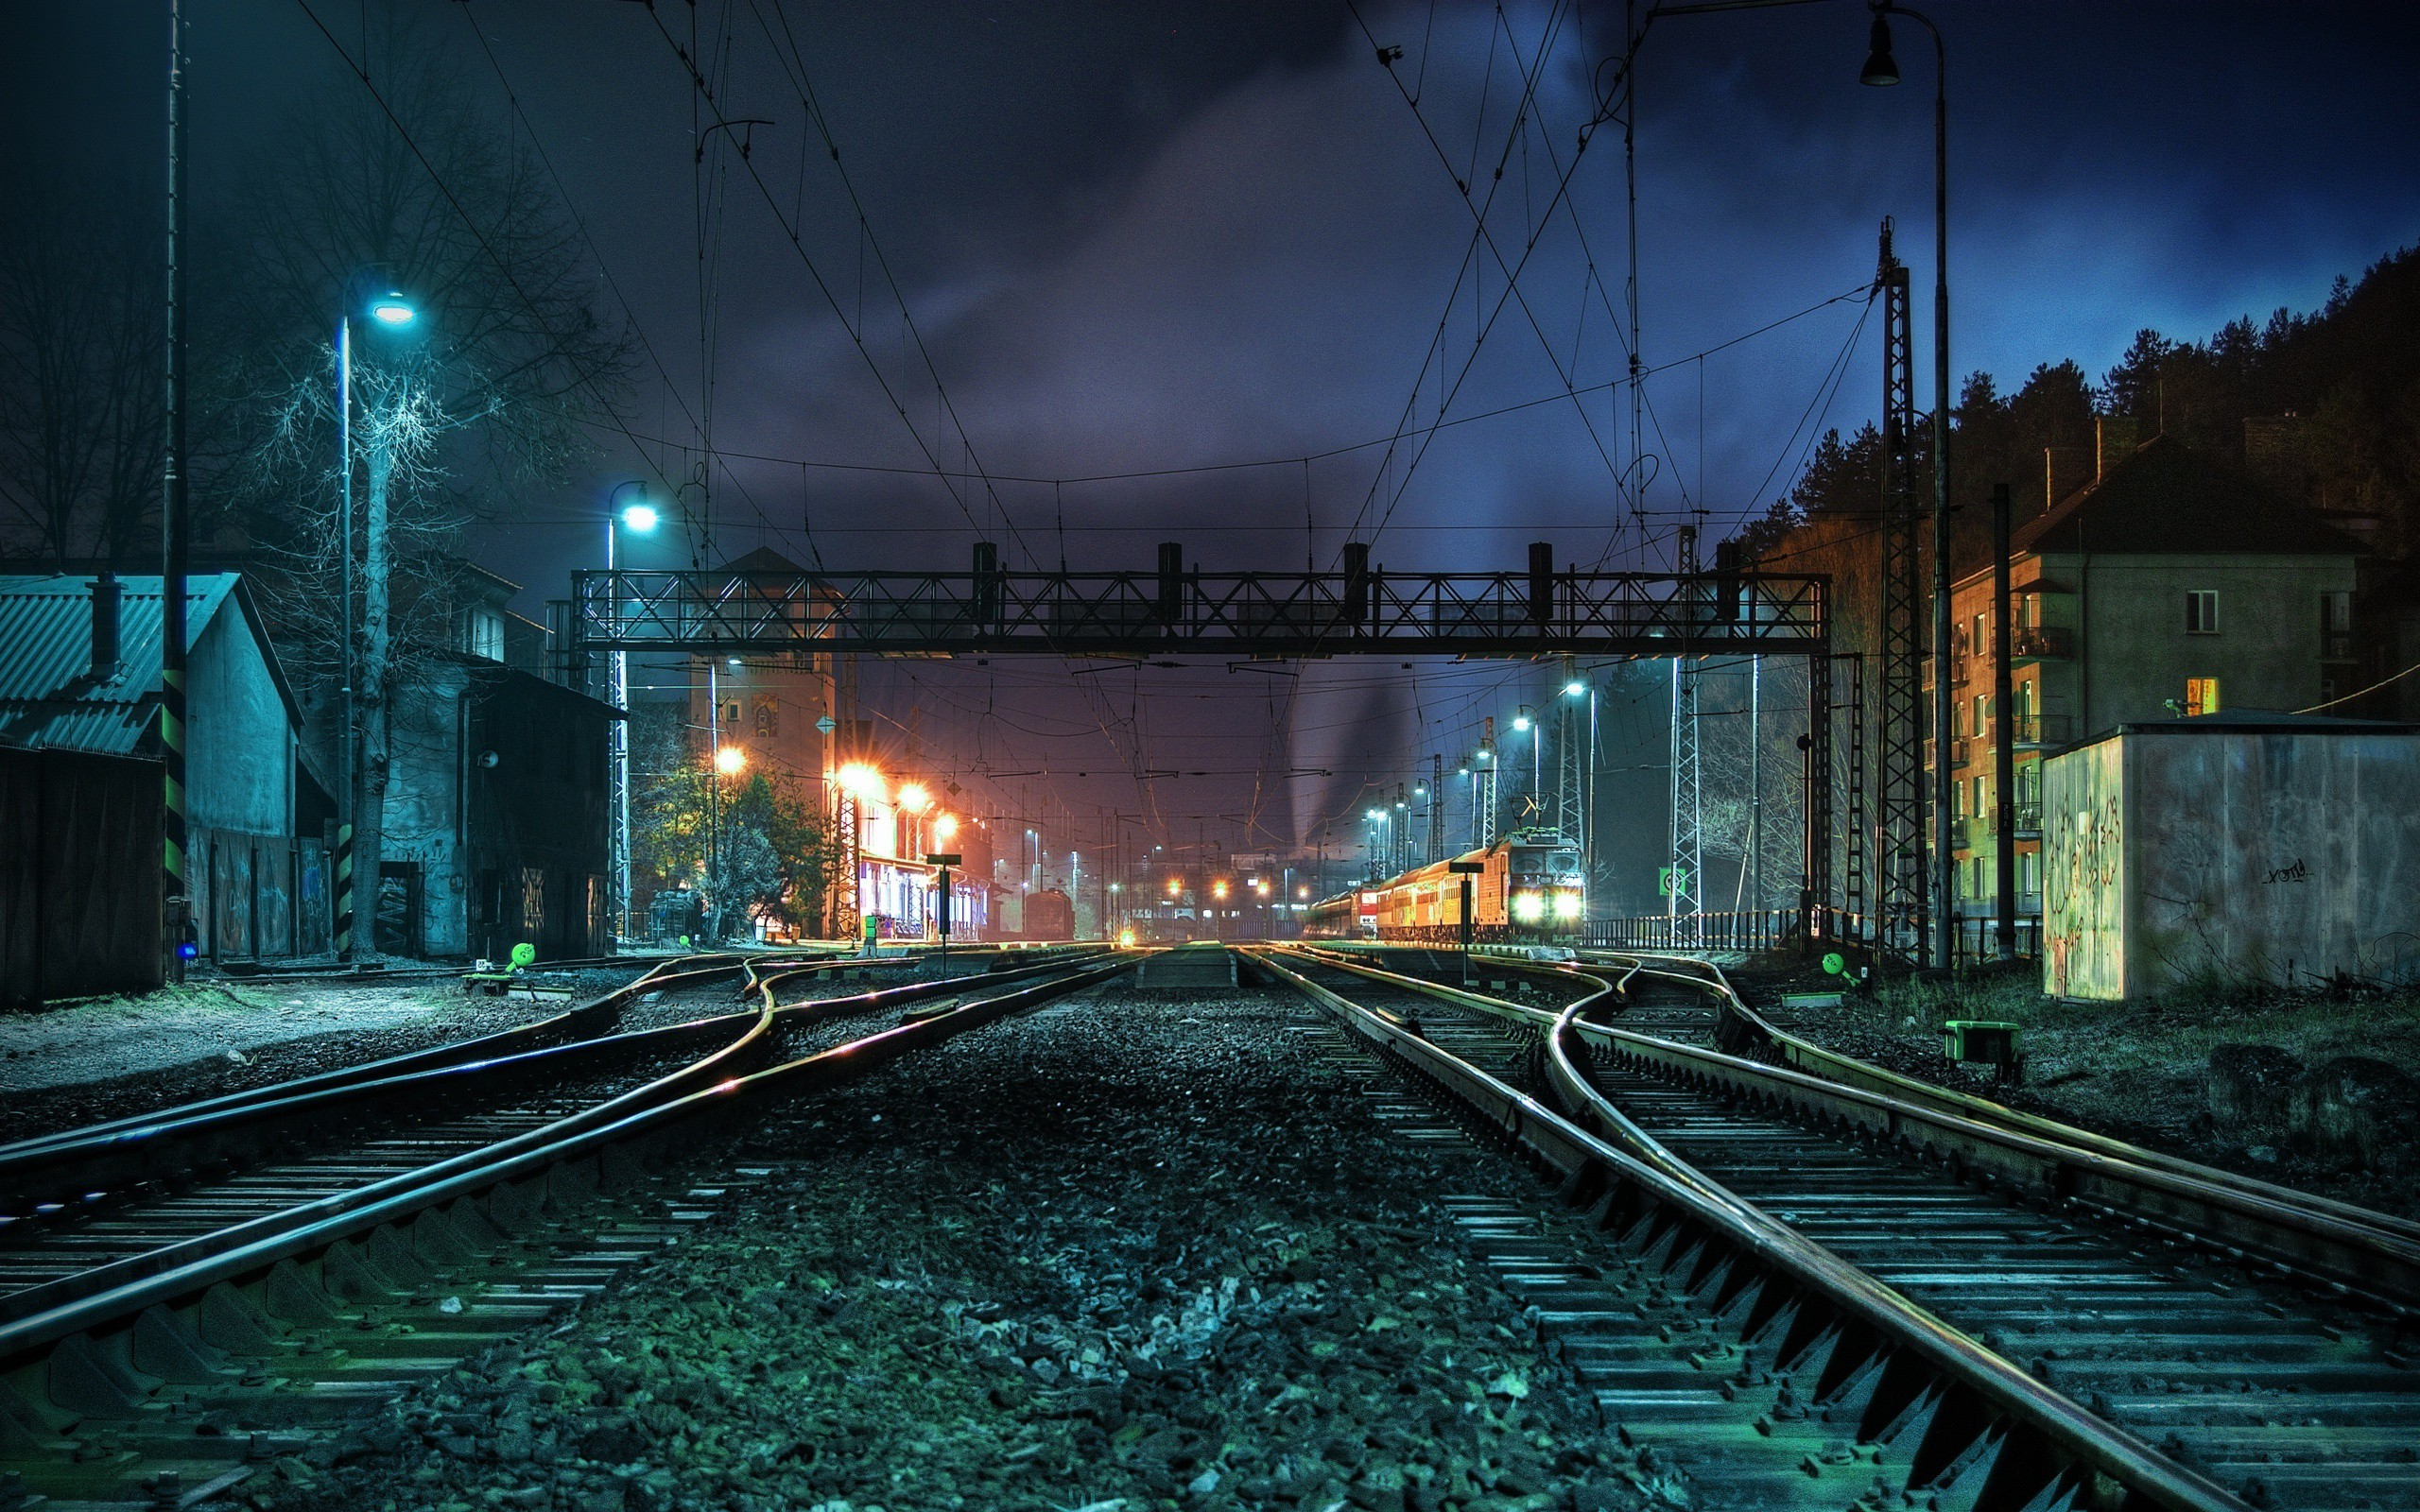 awesome railway road image